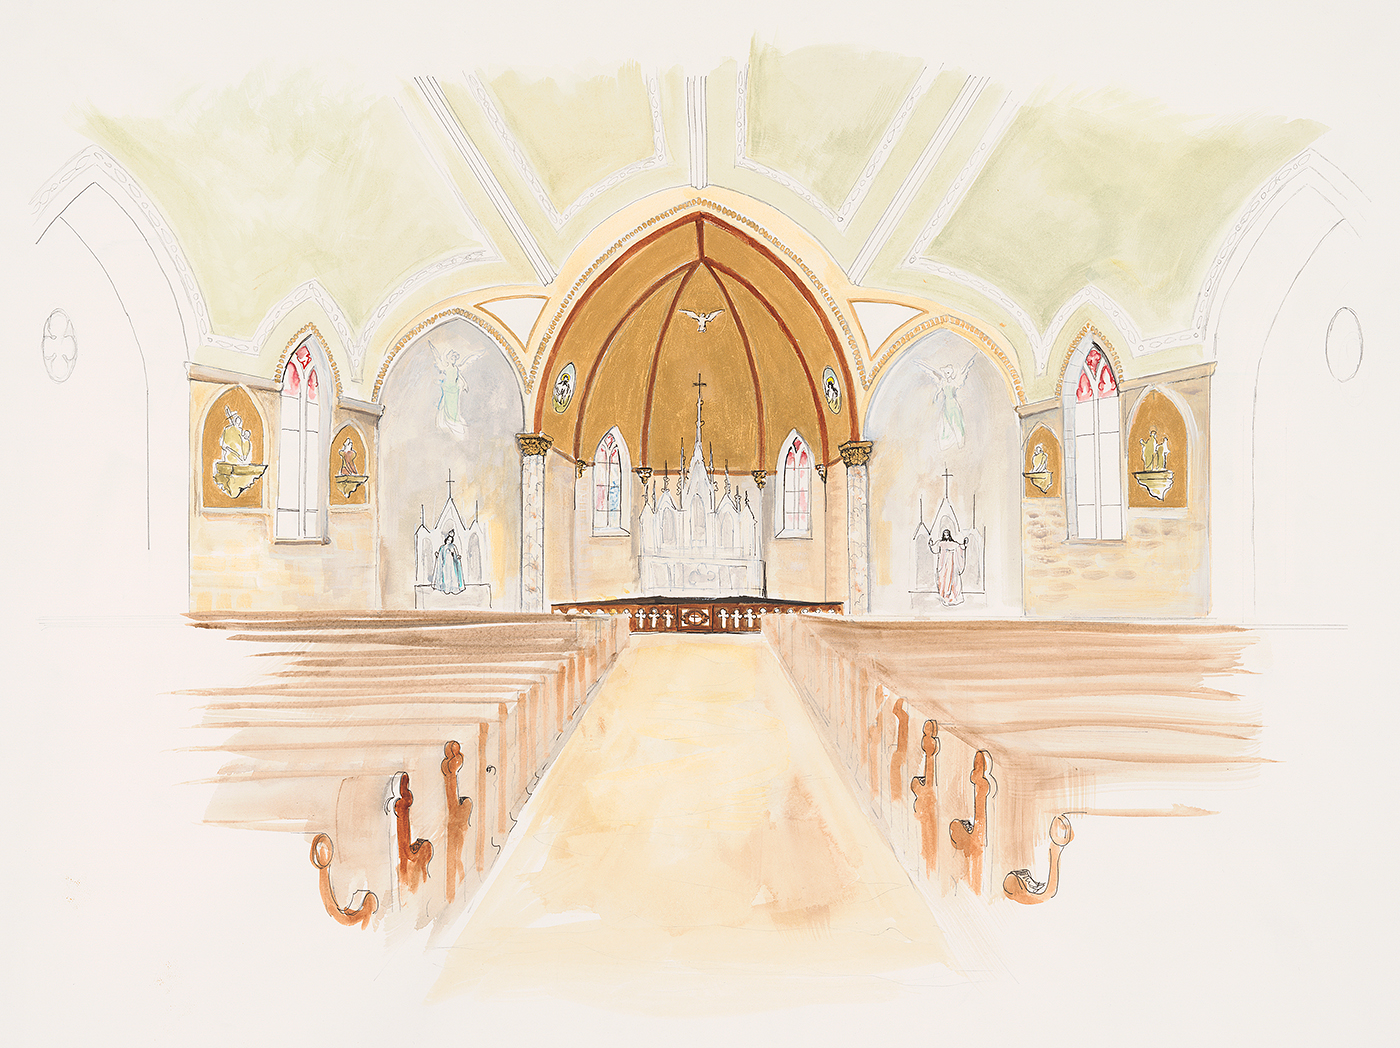 proposal st peter and st paul church renovation